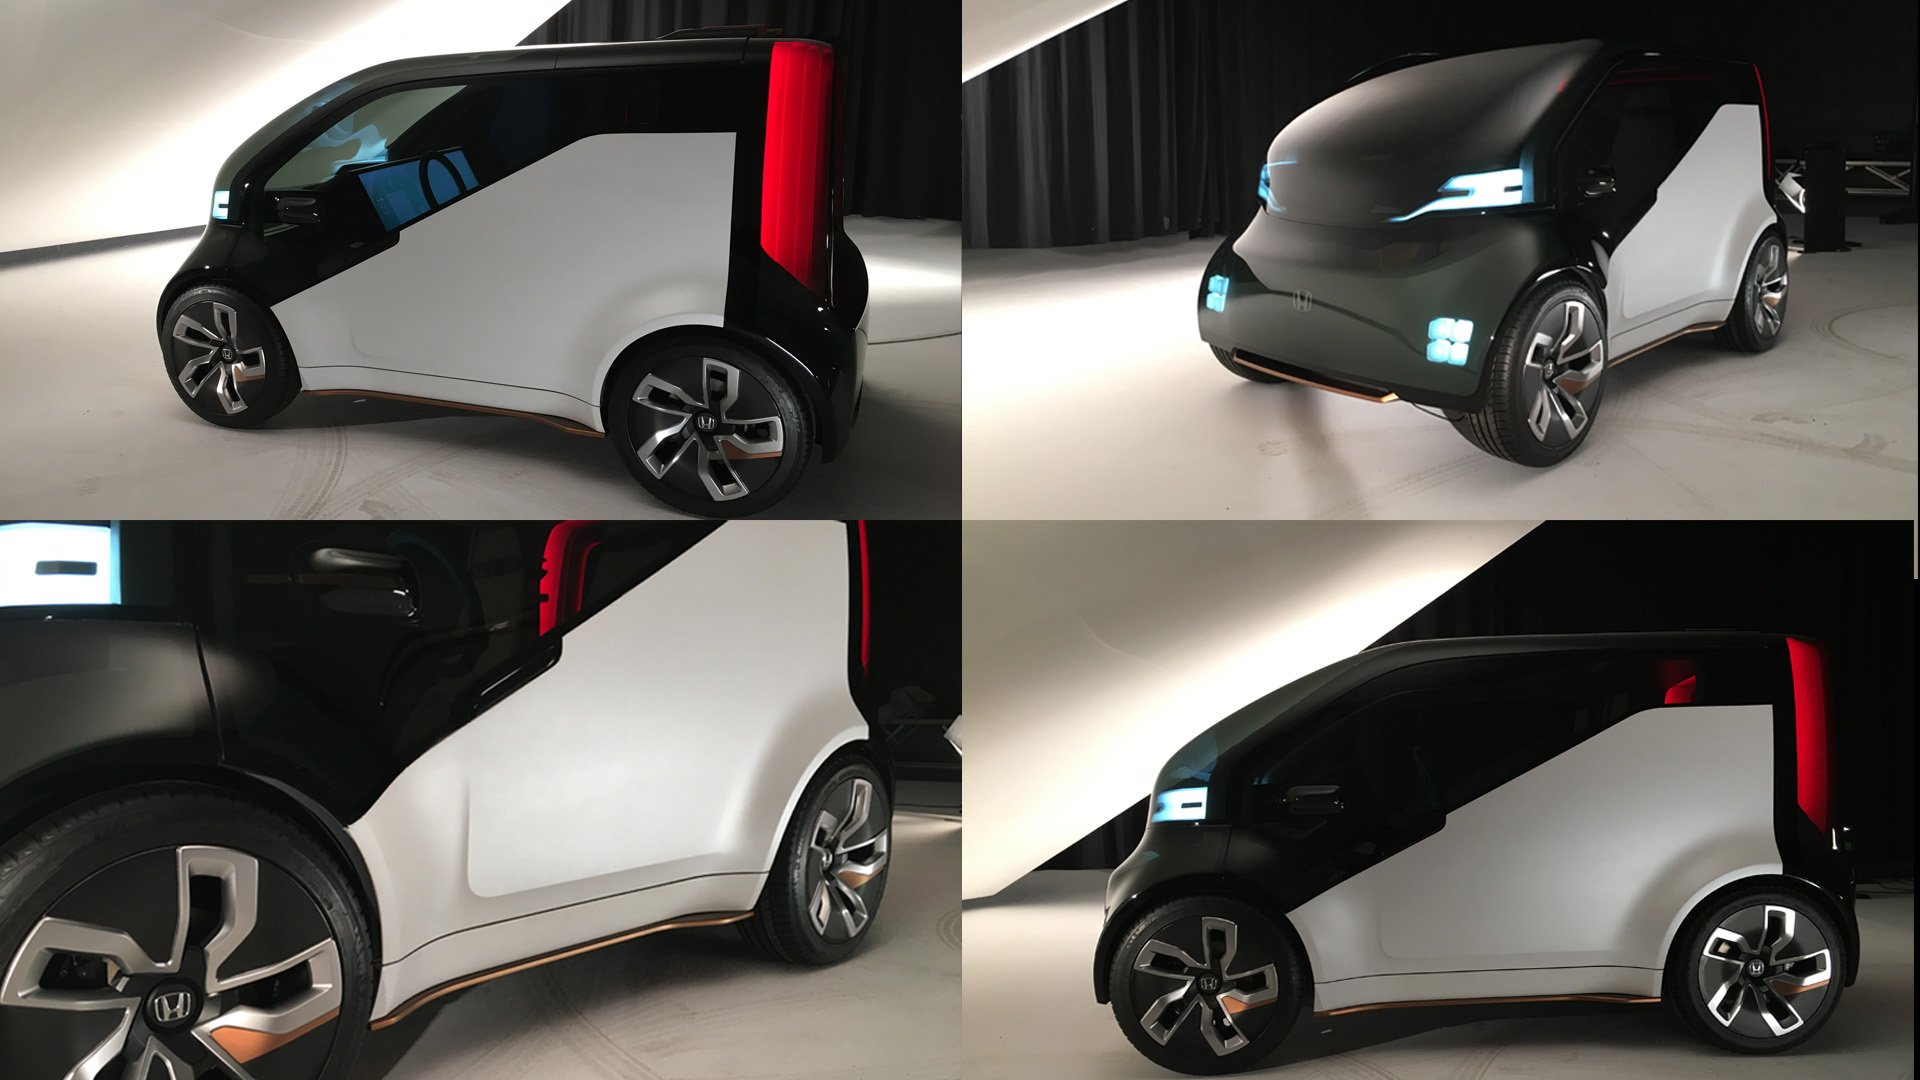 photo reference of Honda's neu-v car in a studio environment